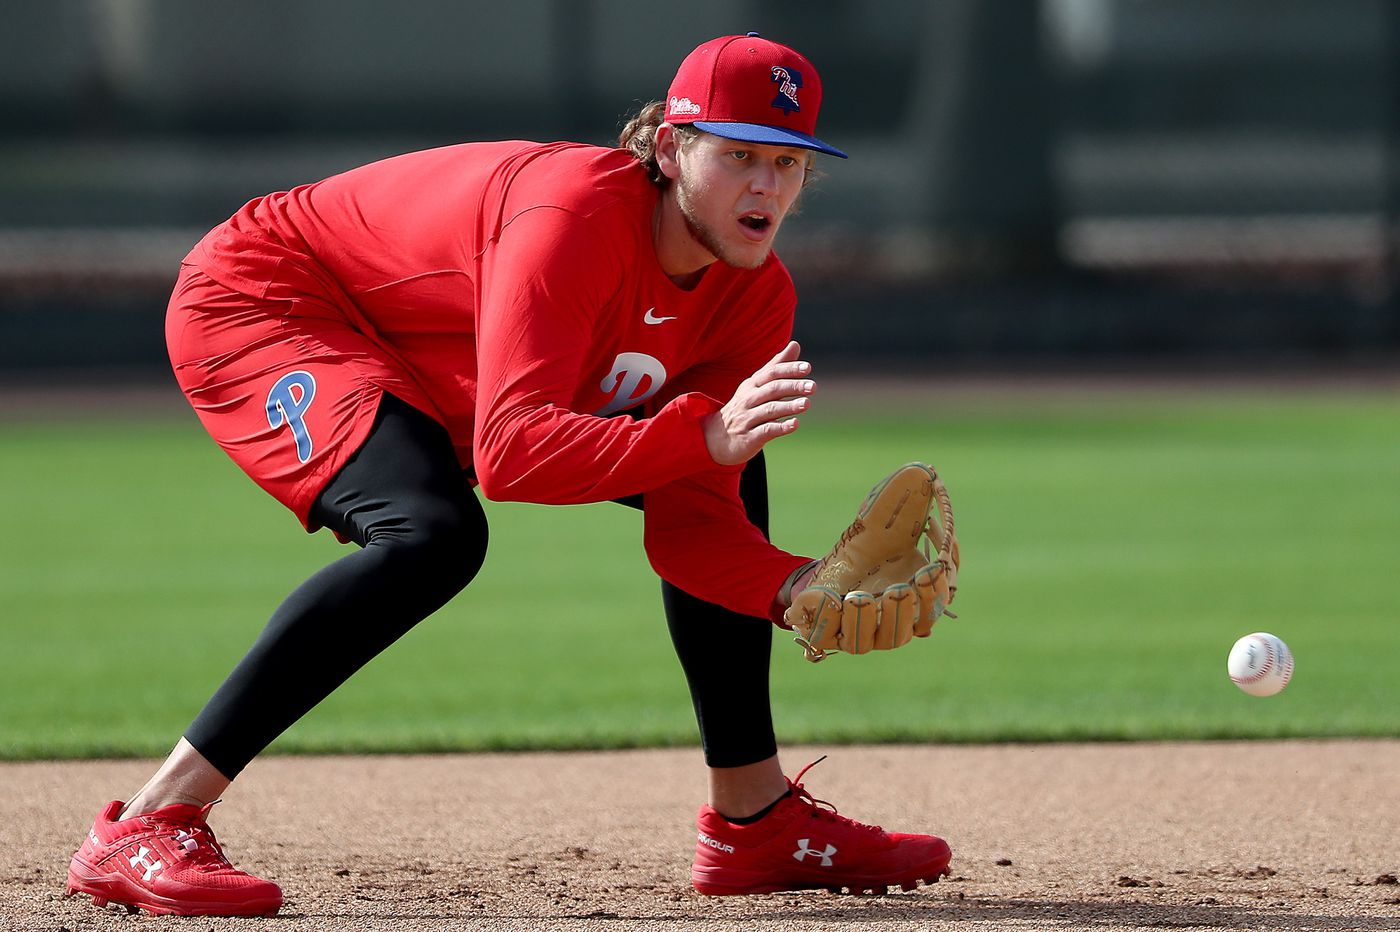 Phillies prospect Alec Bohm showed promise in four weeks in Florida | Extra Innings